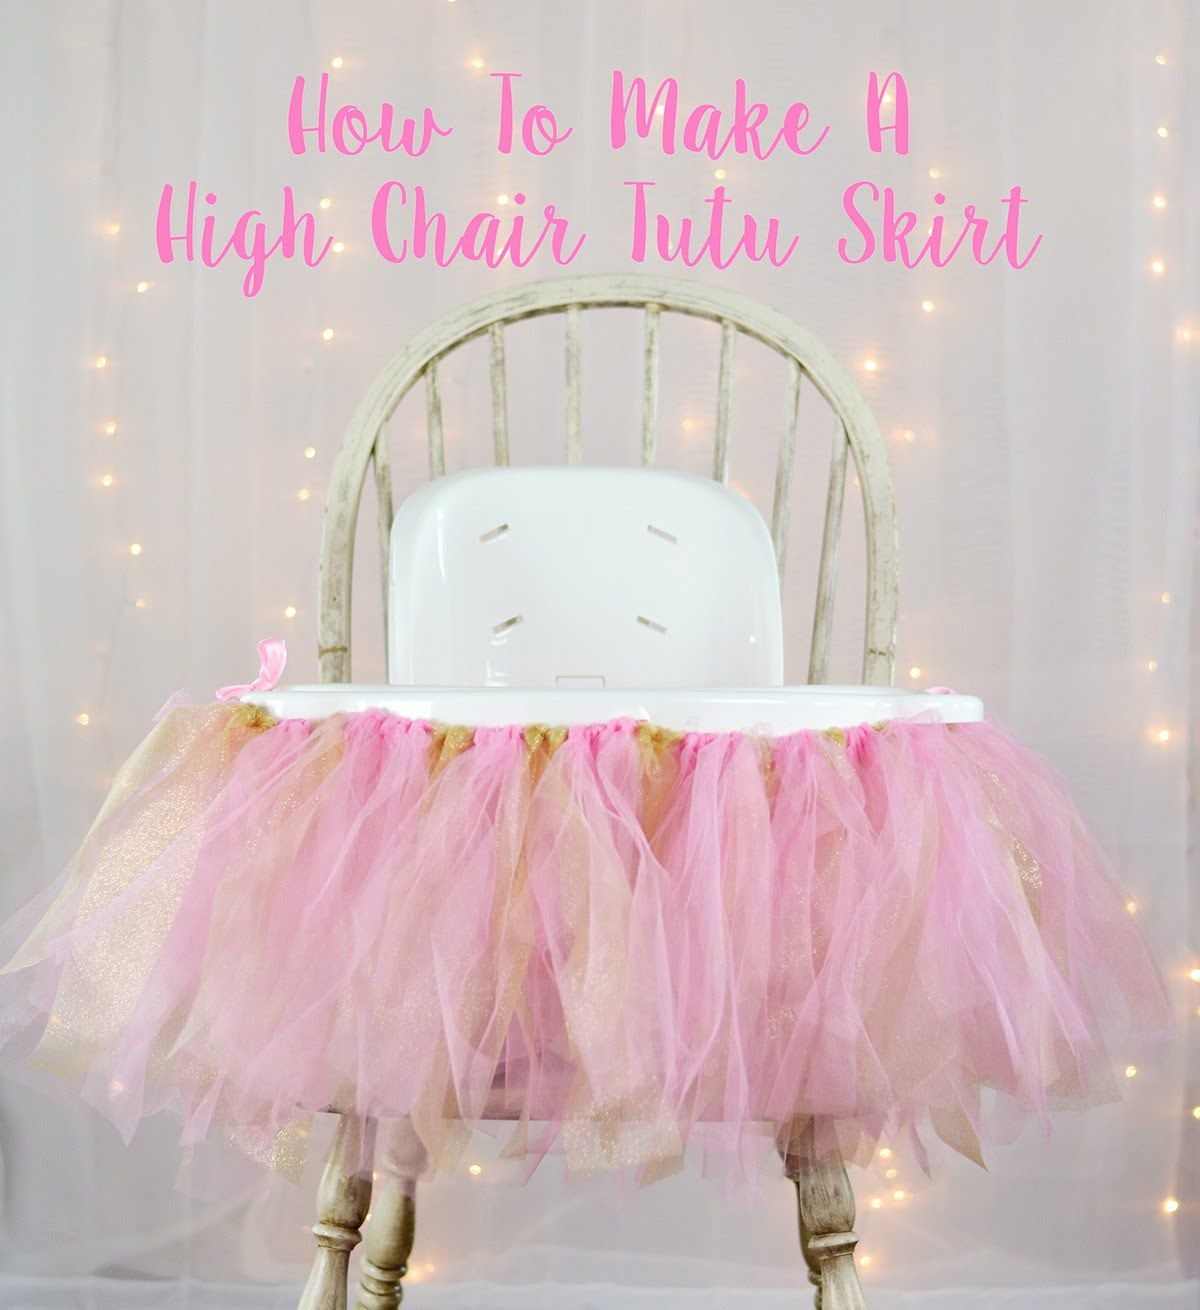 How To Make A High Chair Tutu Skirt Party Decorations Pink